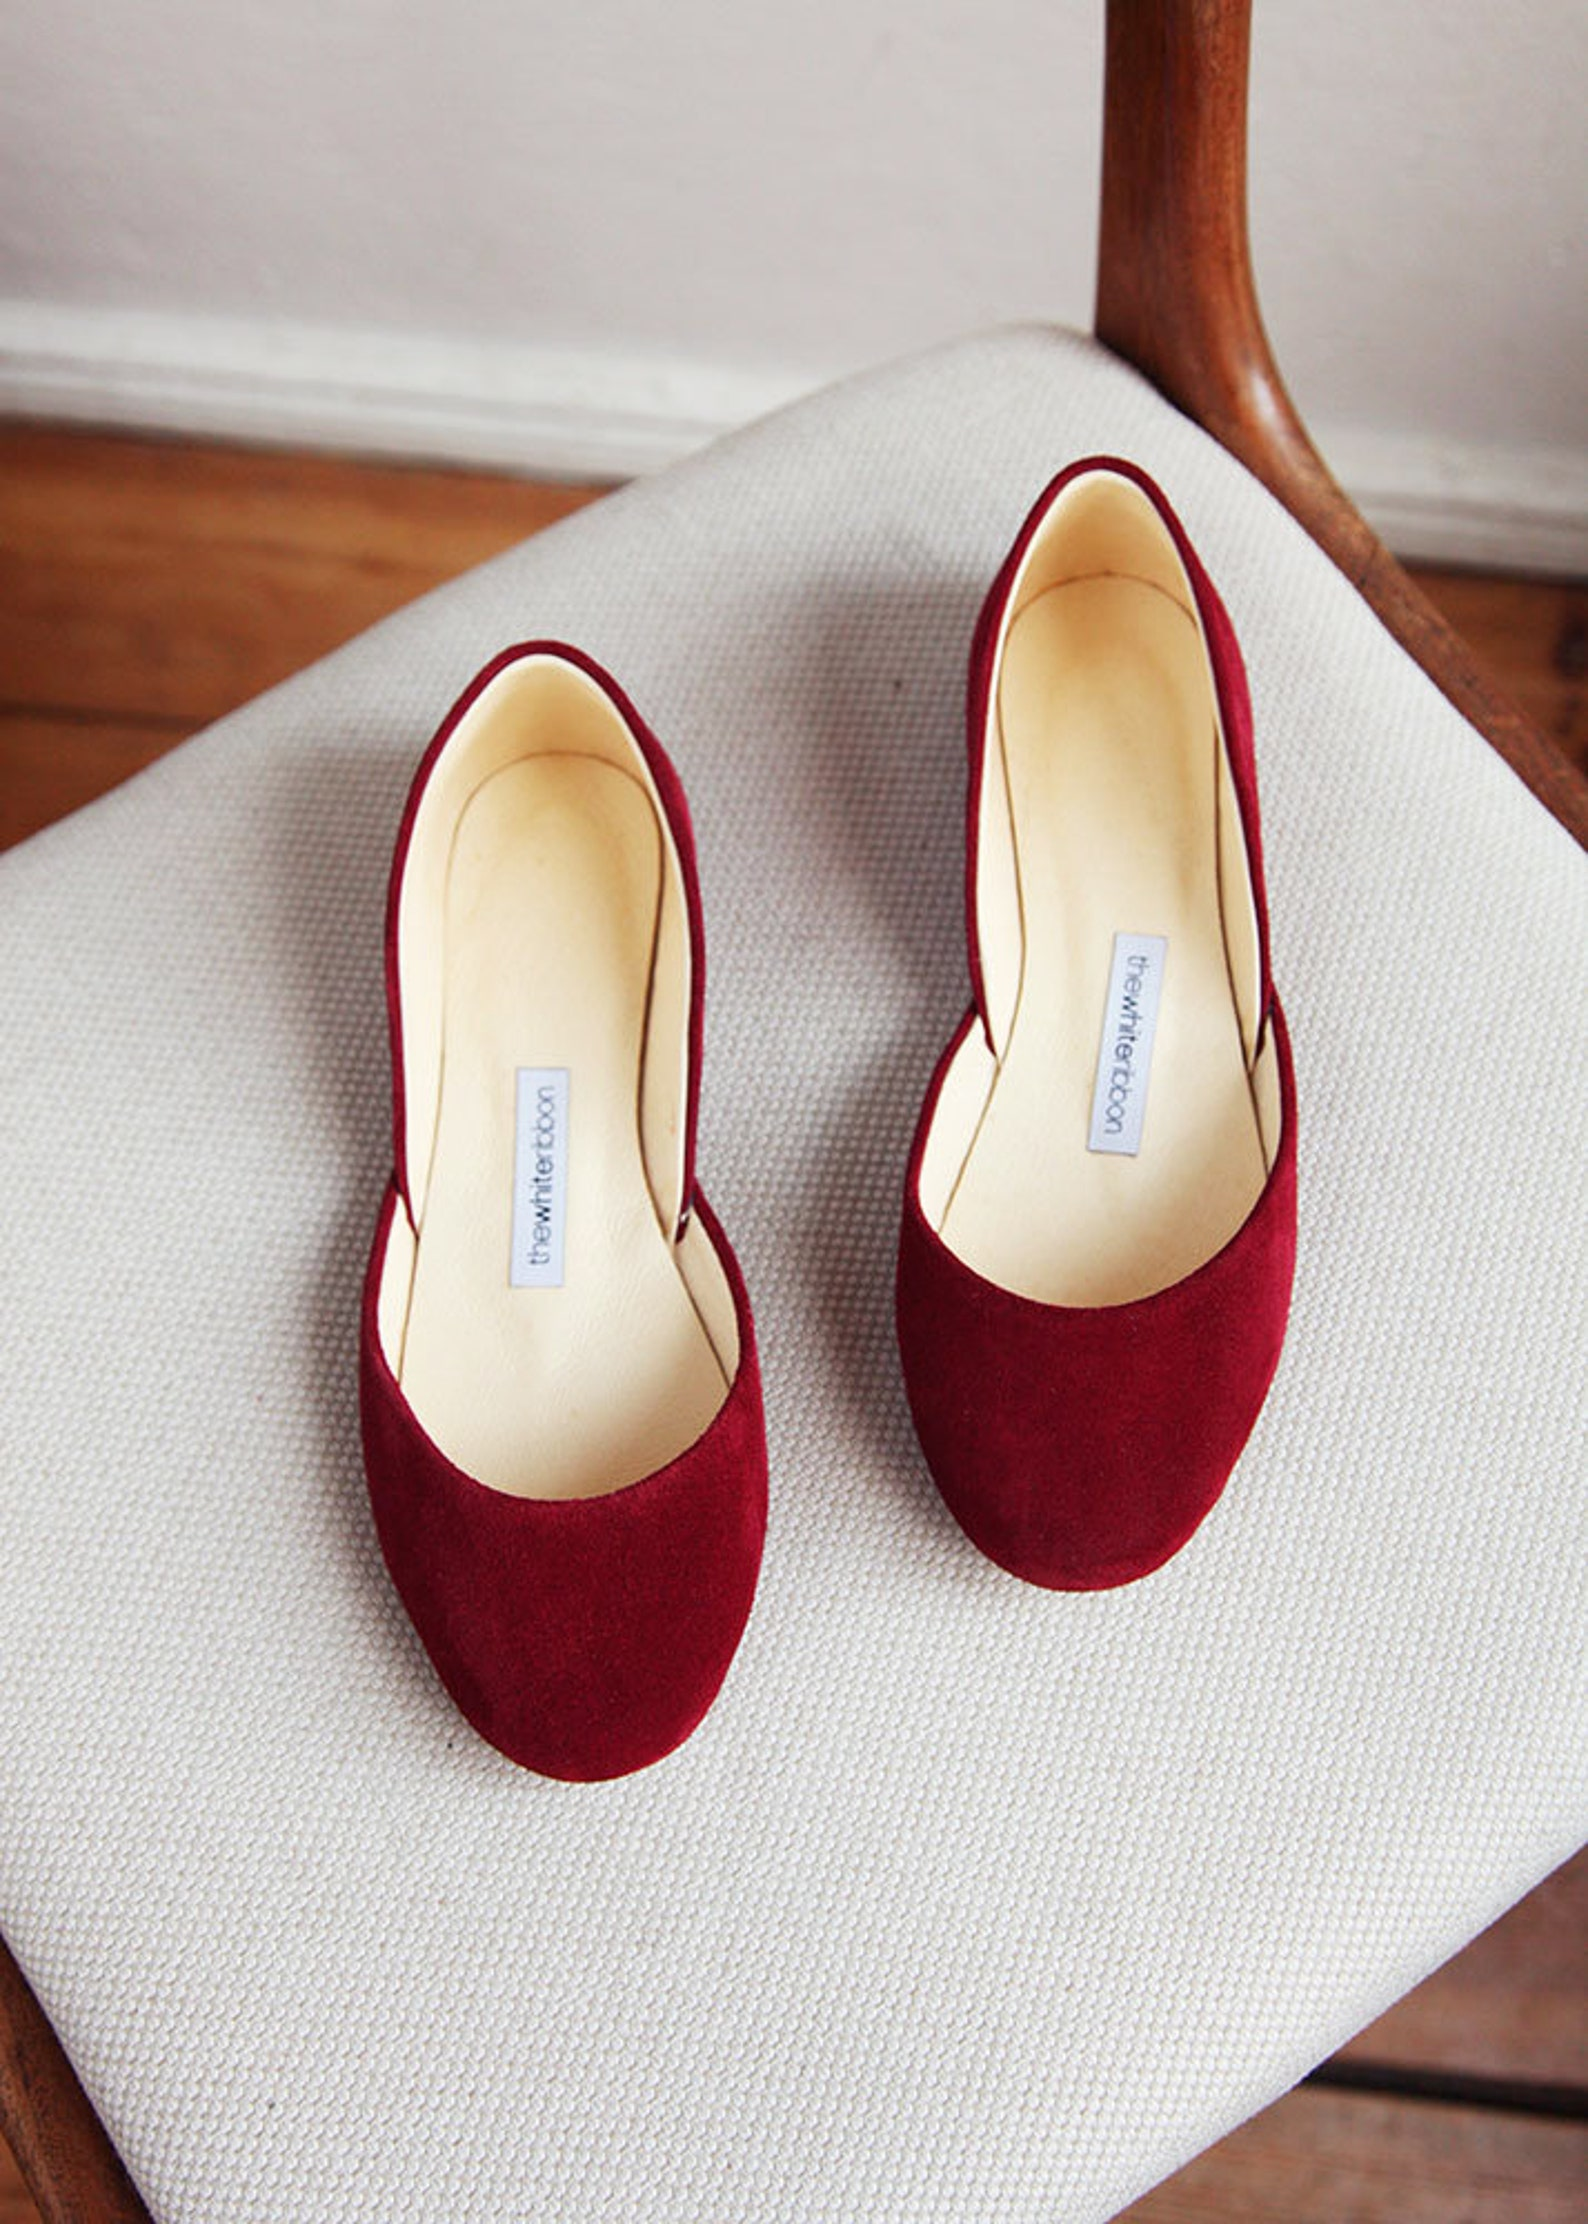 the nubuck leather ballet flats | the perfect summer flat shoes in cherry red | ready to ship